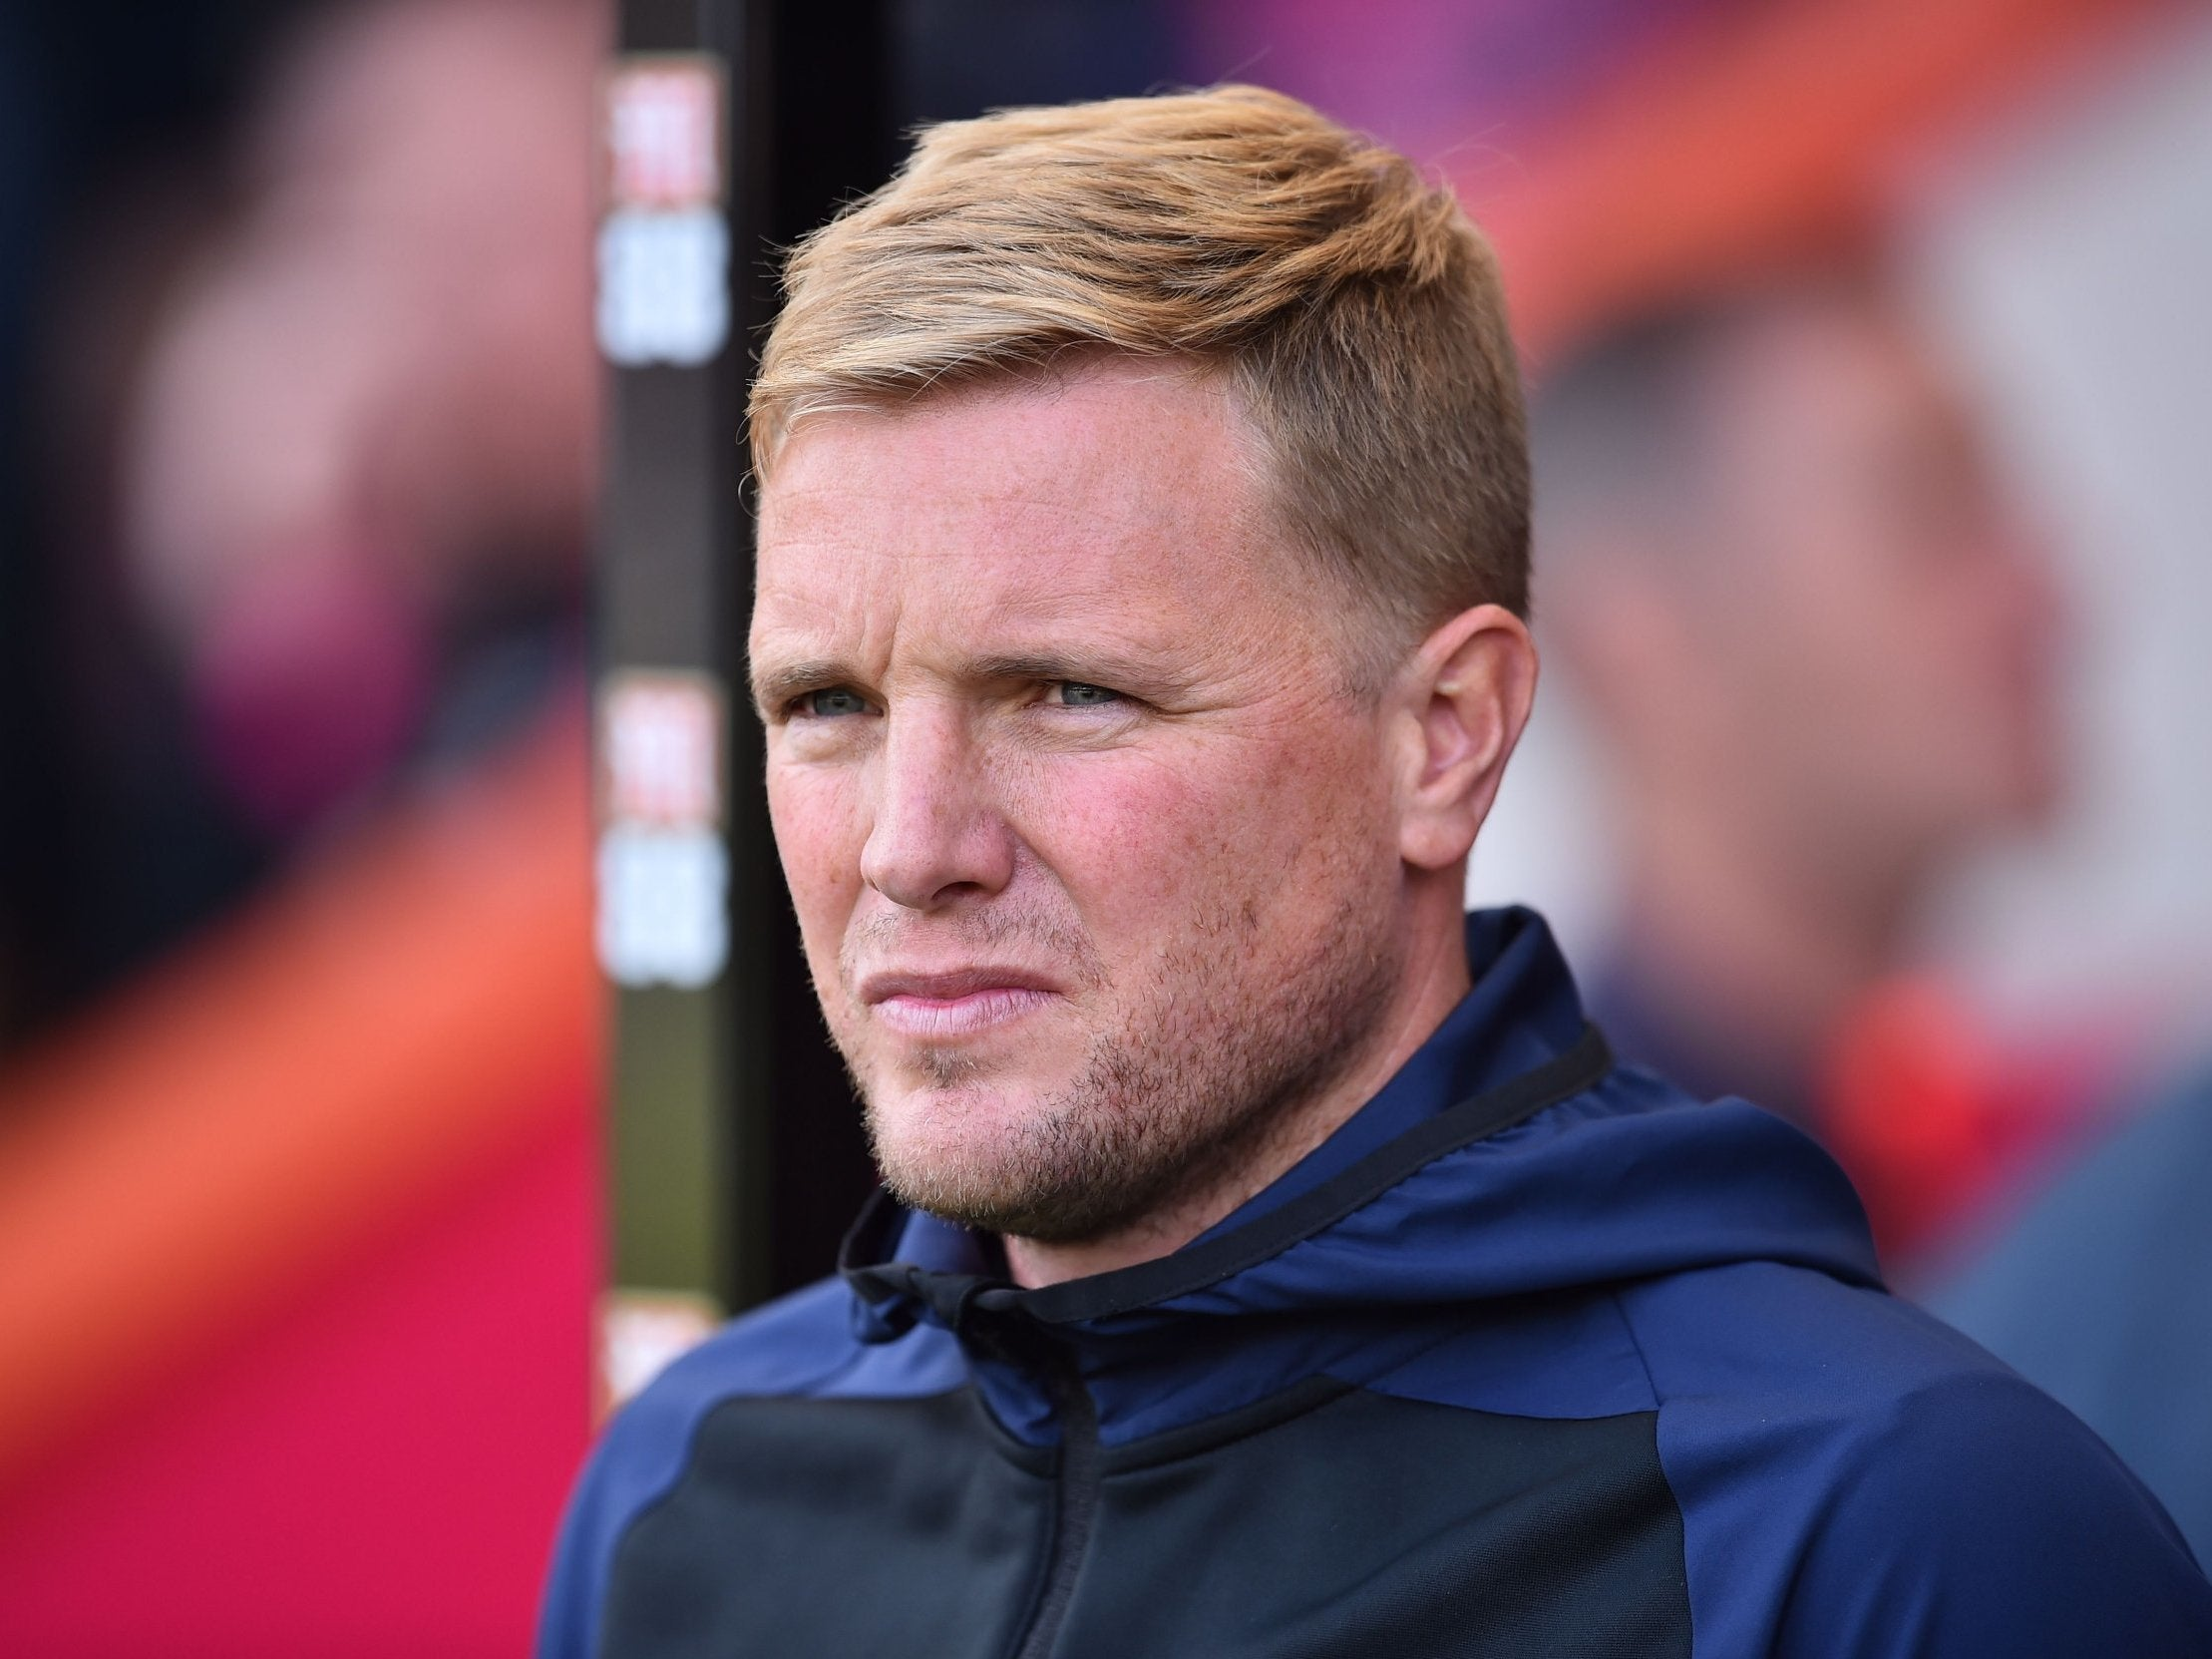 Howe becomes first Premier League manager to take pay cut